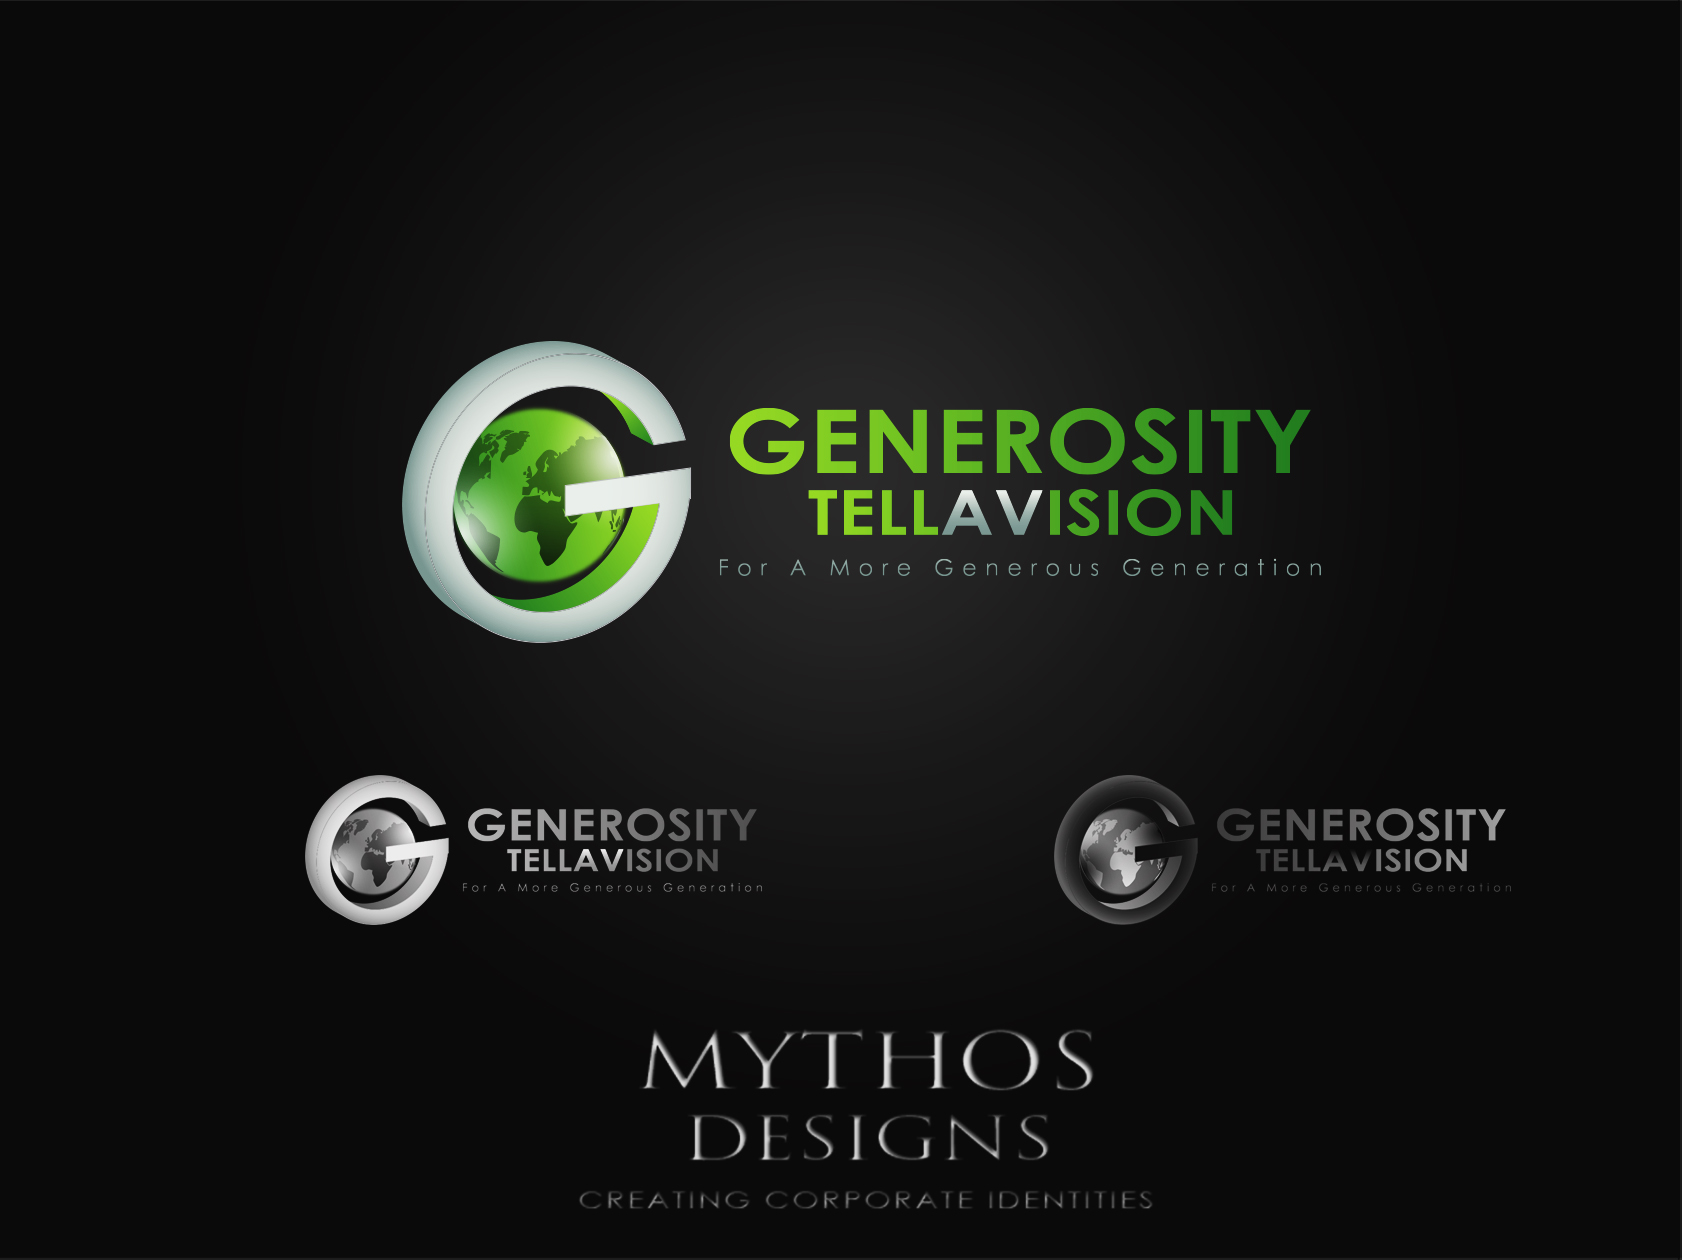 Logo Design by Mythos Designs - Entry No. 79 in the Logo Design Contest Artistic Logo Design for Generosity TellAVision.